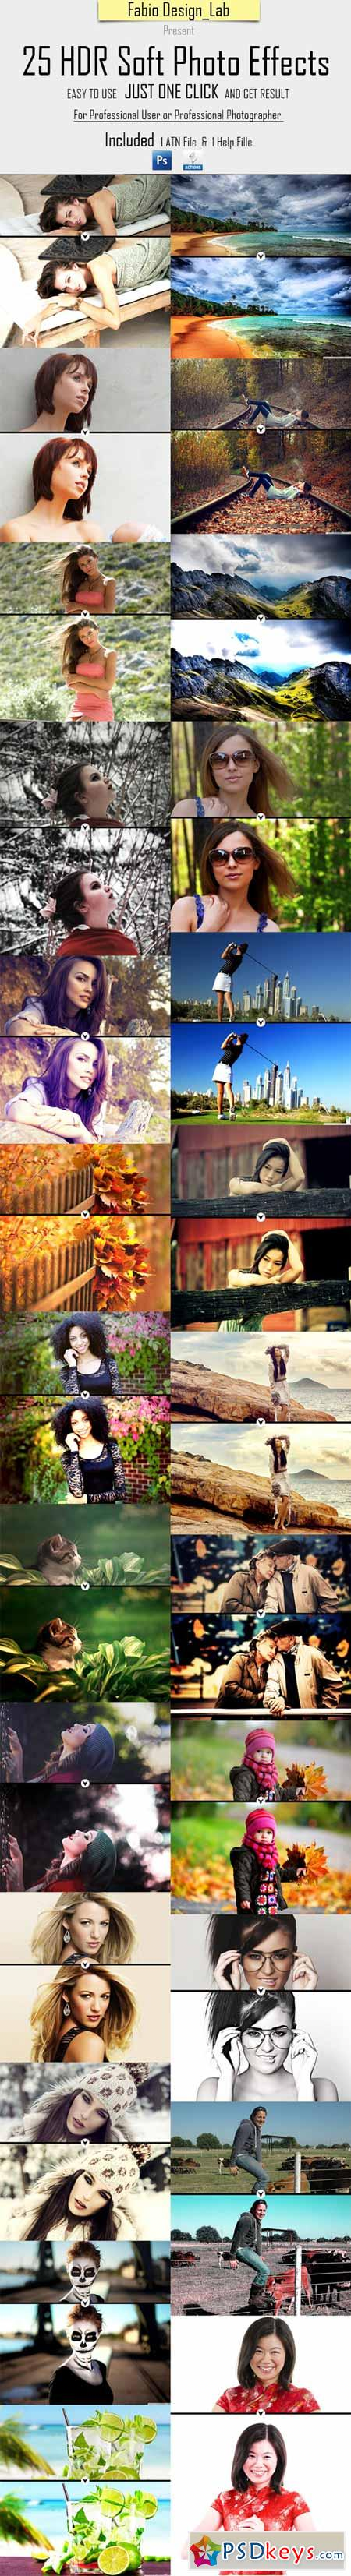 25 HDR Soft Photo Effects 10282438